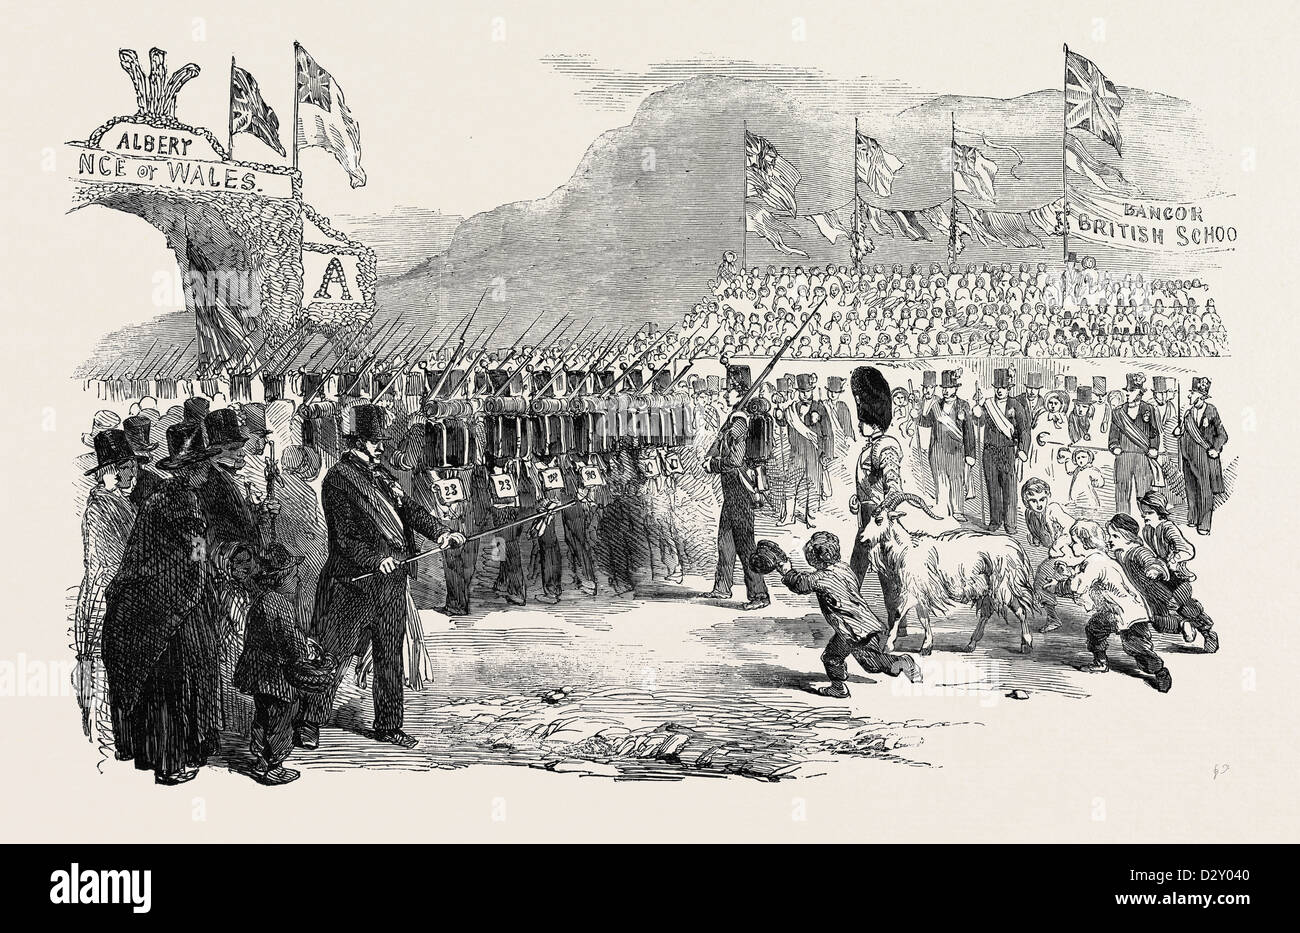 RECEPTION OF HER MAJESTY, QUEEN VICTORIA, AT BANGOR, 1852 - Stock Image